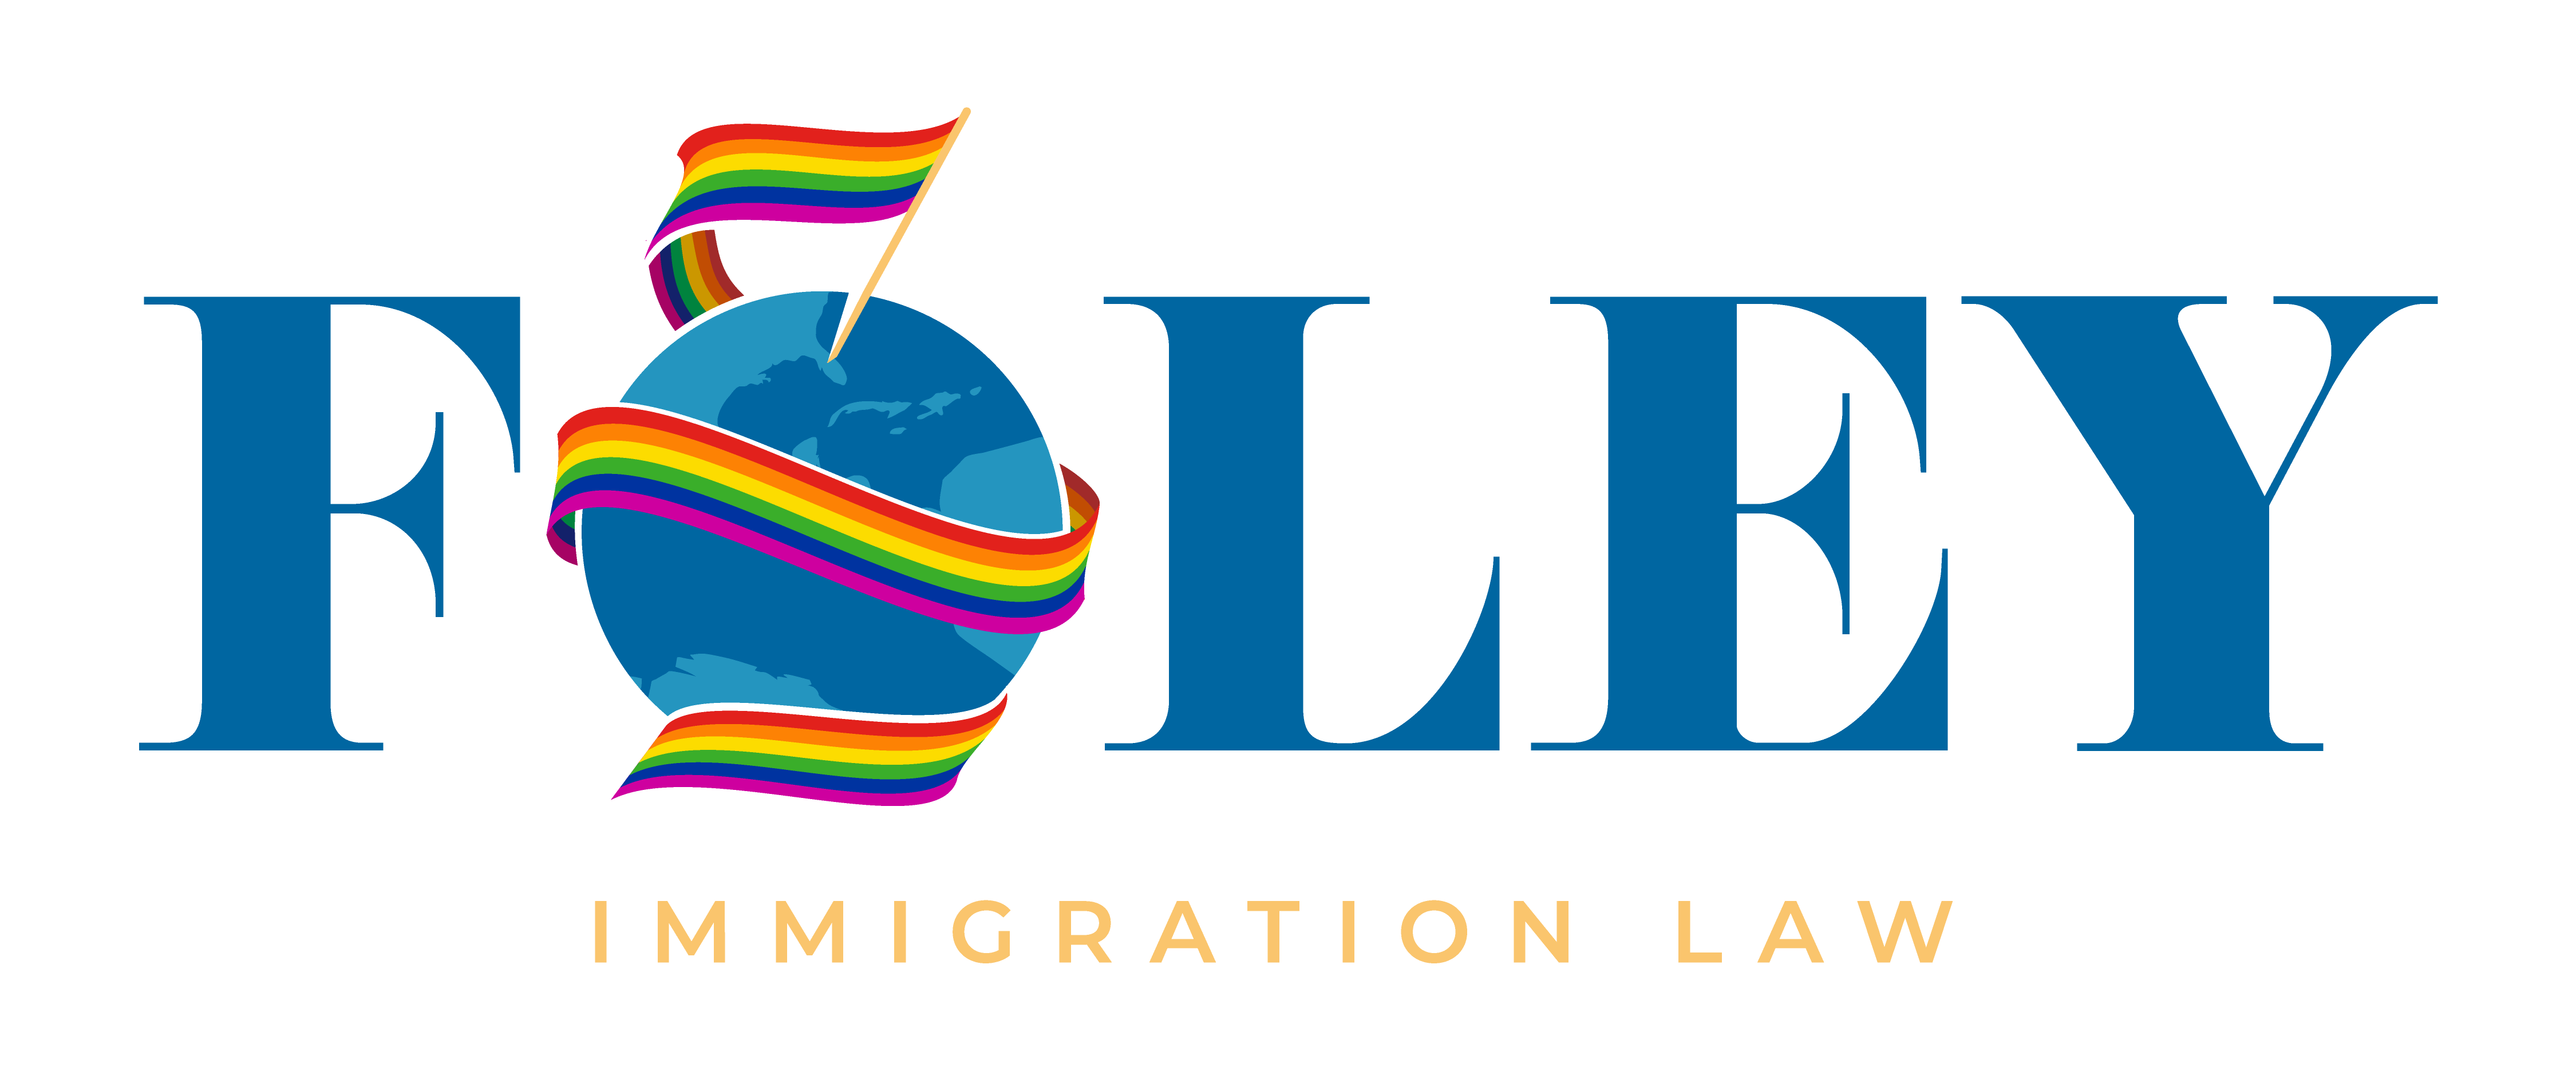 Foley Immigration Law